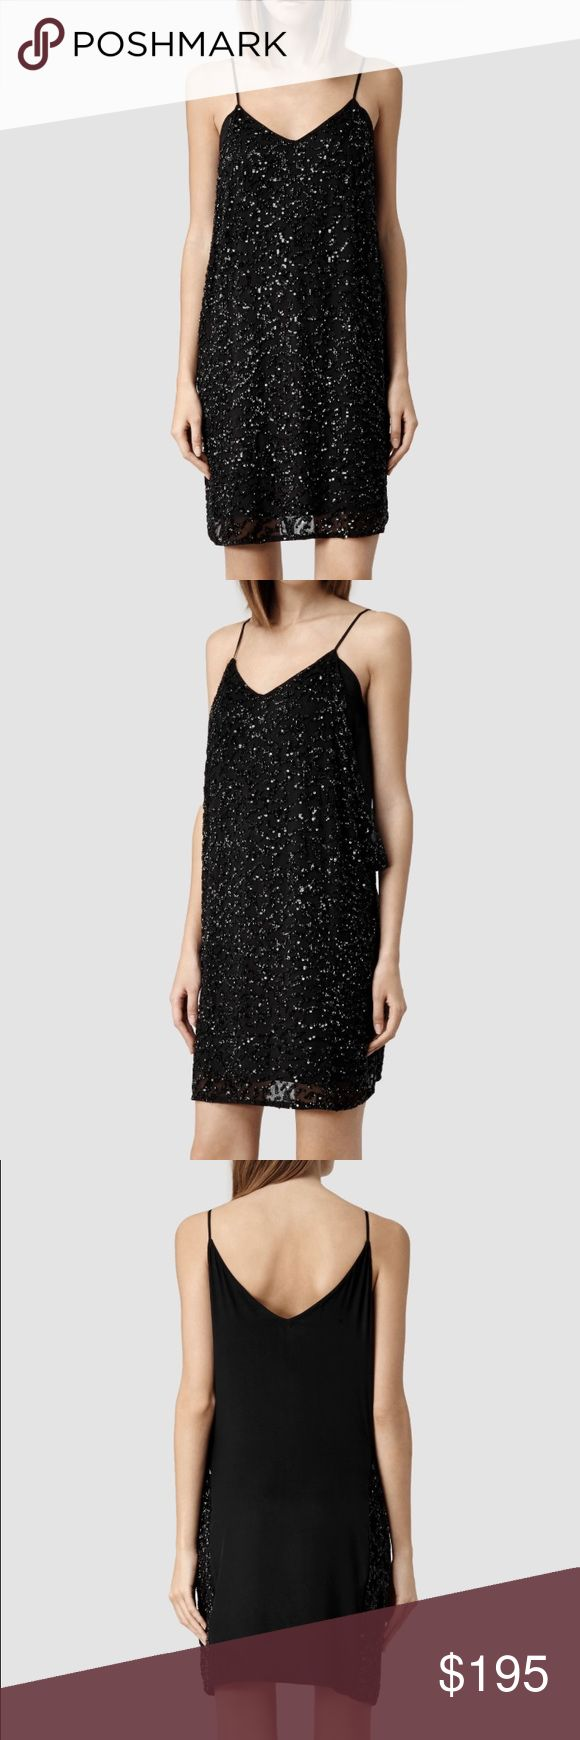 AllSaints Black Dress Covered in beads and with delicate straps, this is a gorge dress! Never been worn. With its tag. All Saints Dresses Mini